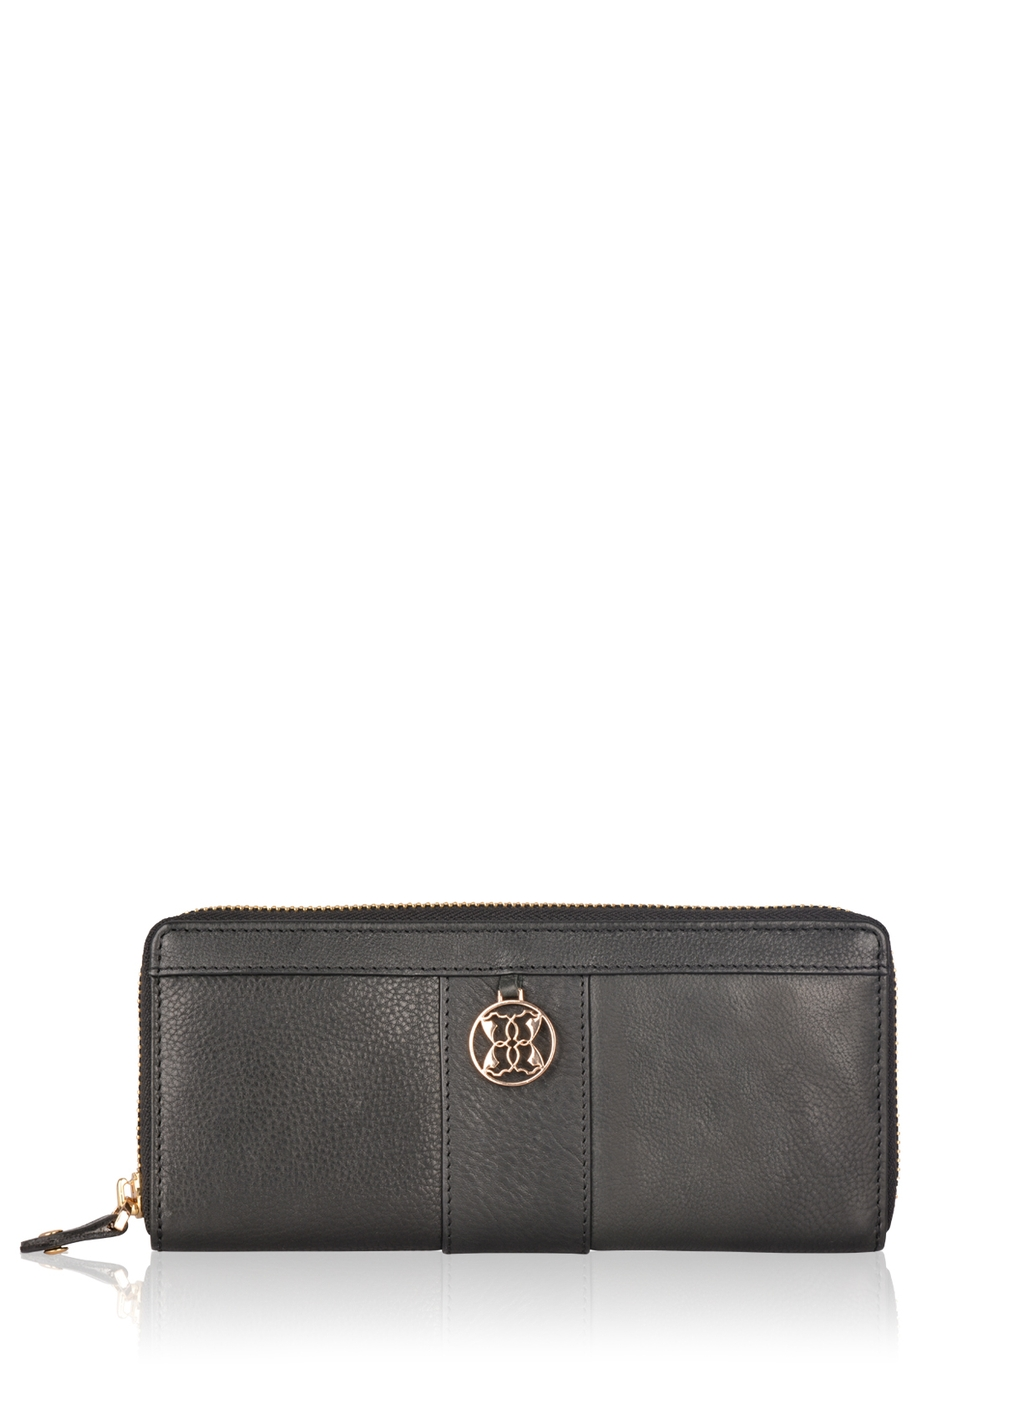 Derwent Leather Zip Around Purse in Black